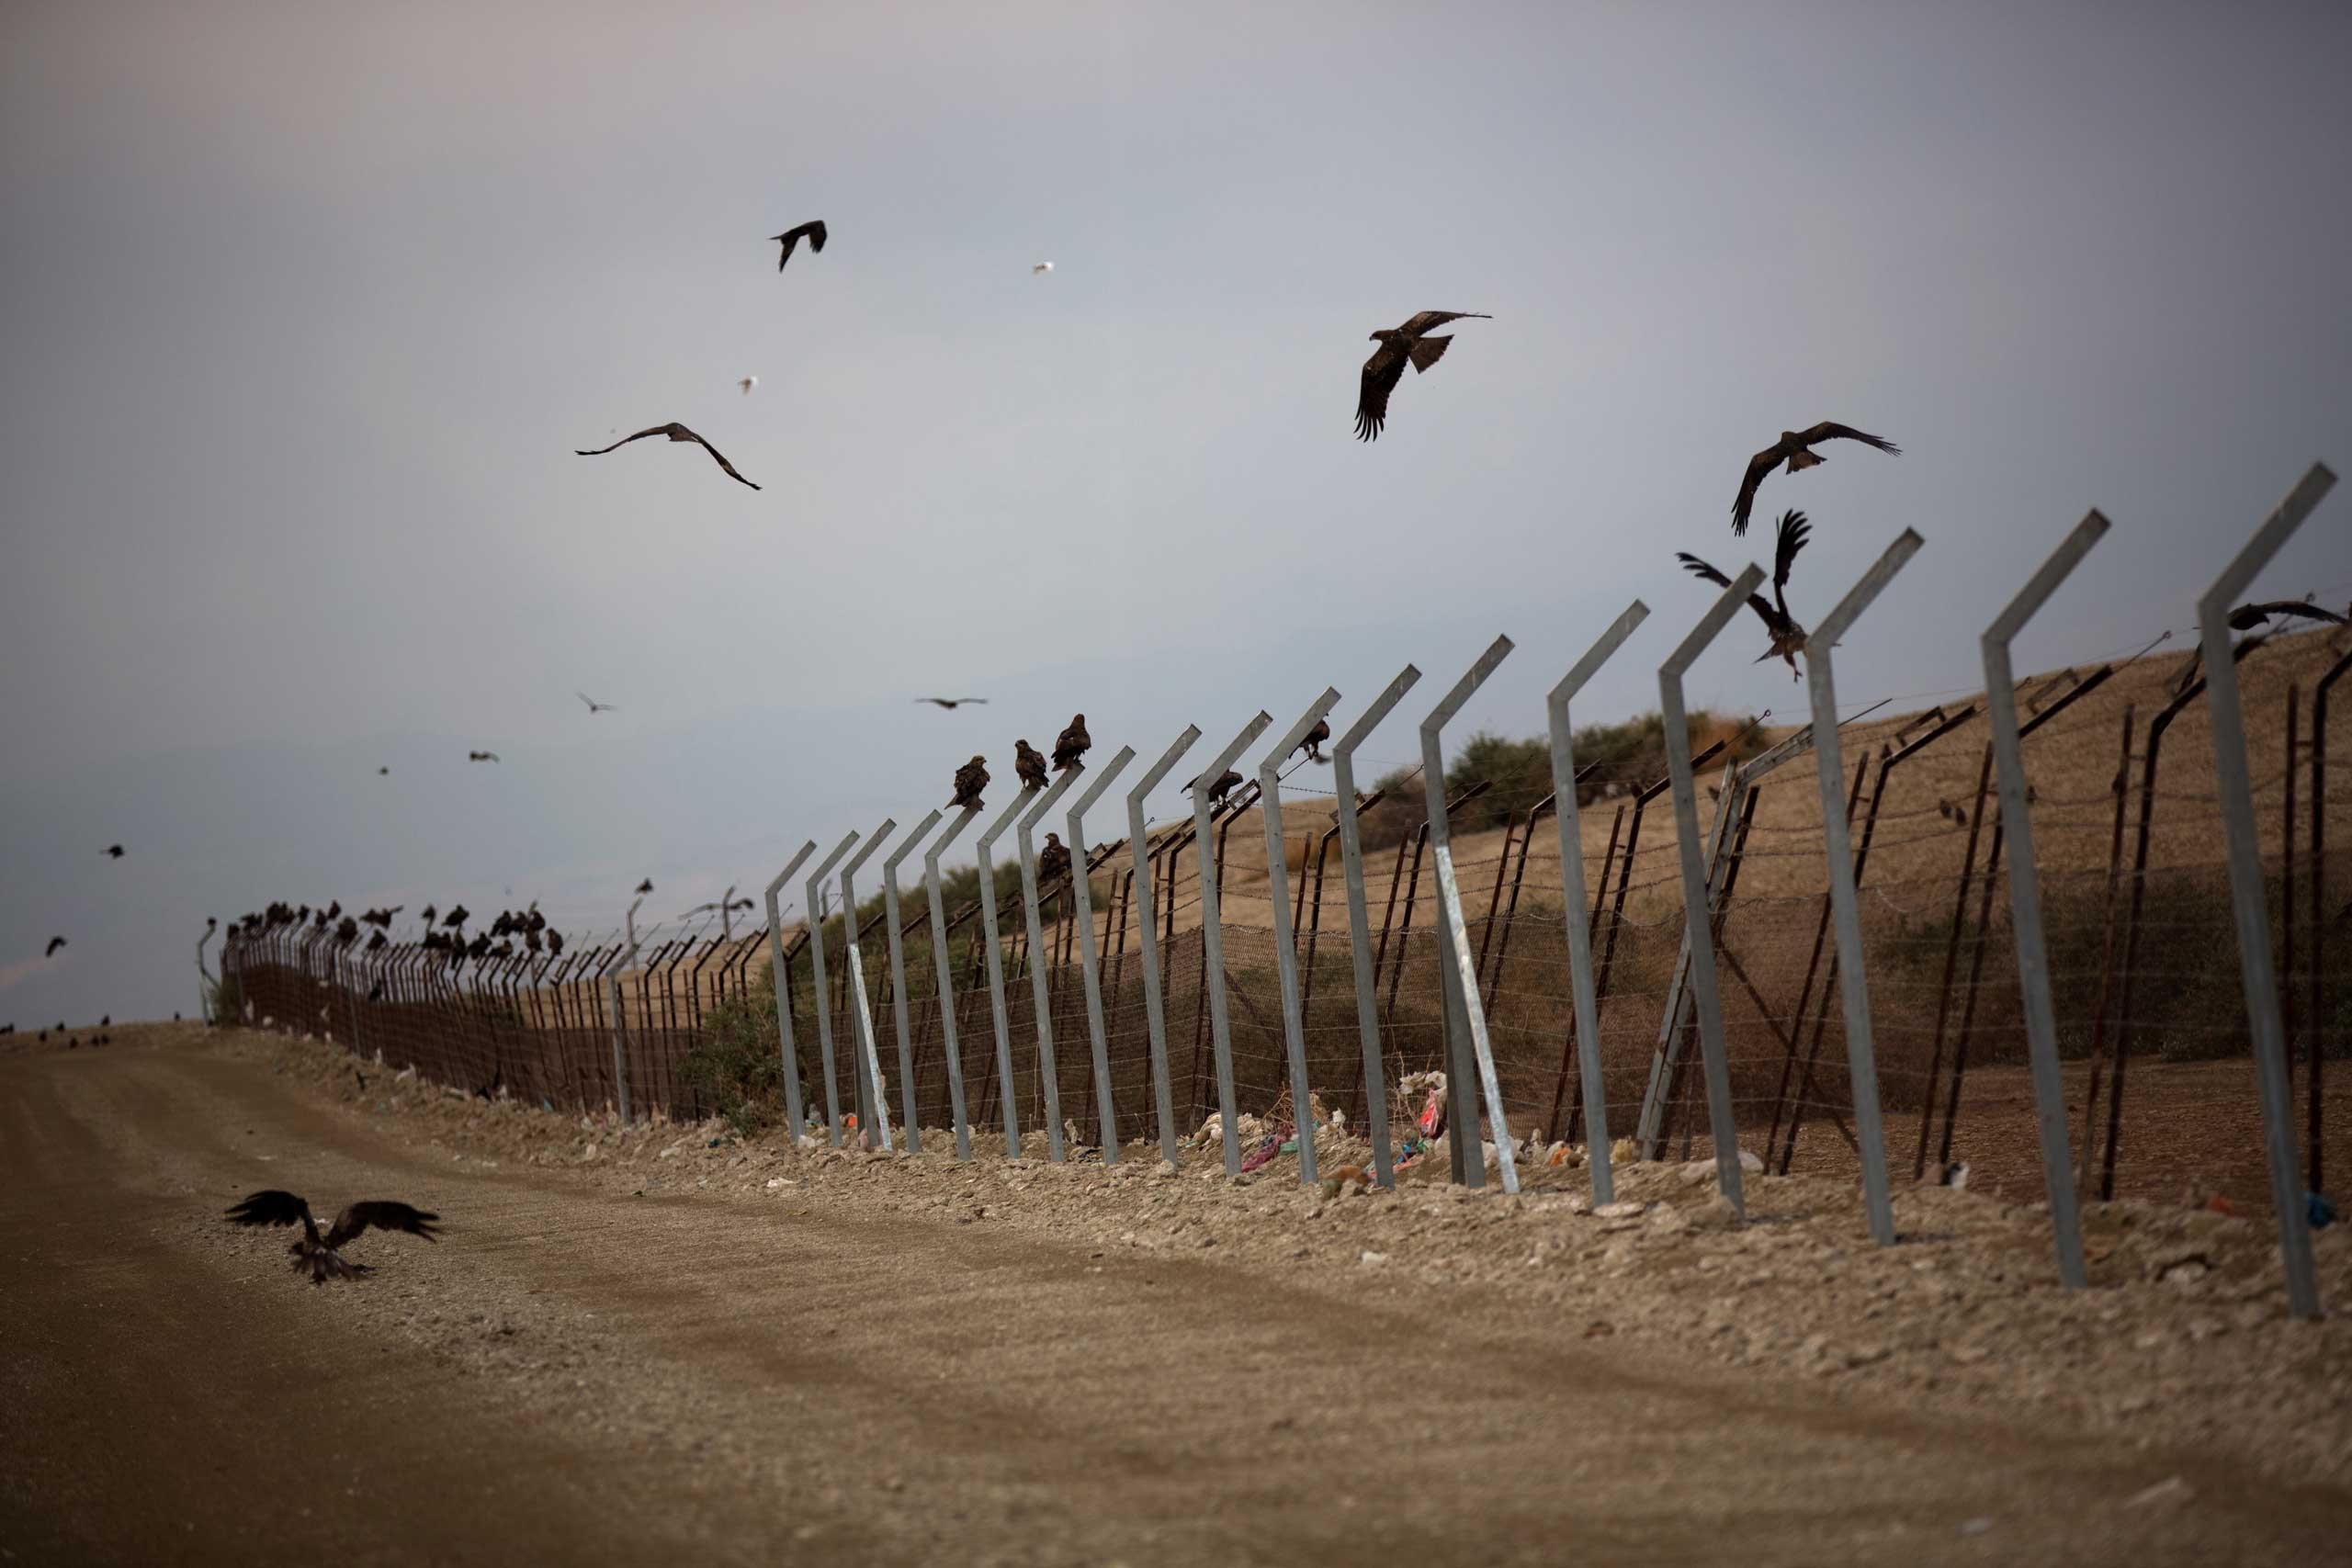 Birds fly over the border fence that divides Israel and Jordan in the Jordan Valley, in the Israeli occupied Palestinian West Bank, on Feb. 16, 2014.